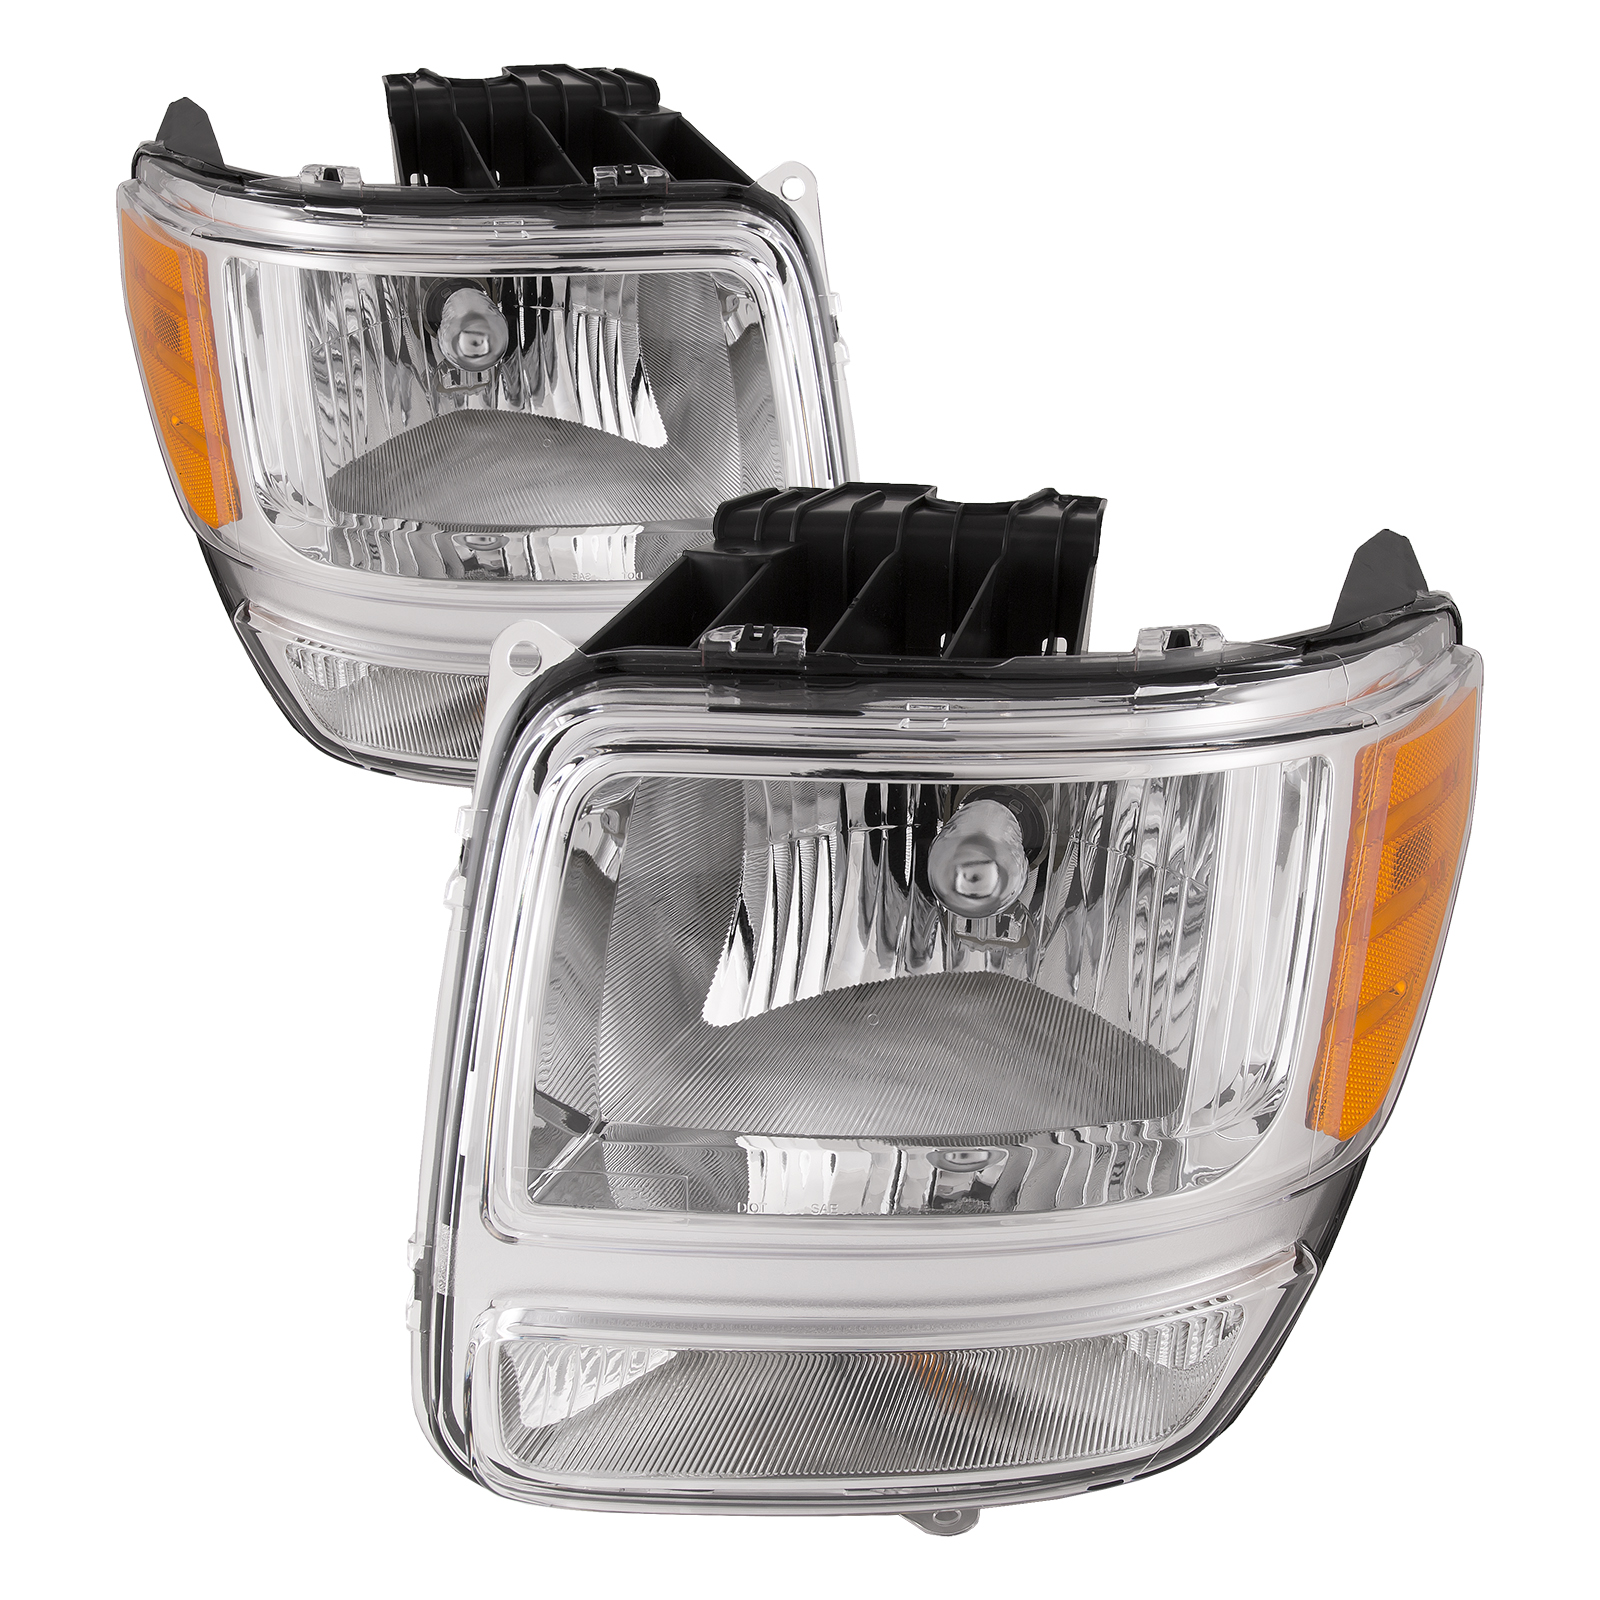 Left /& Right Chrome Front Lamps Headlights with Bulbs Itasca Suncruiser 2003-2005 RV Motorhome Pair